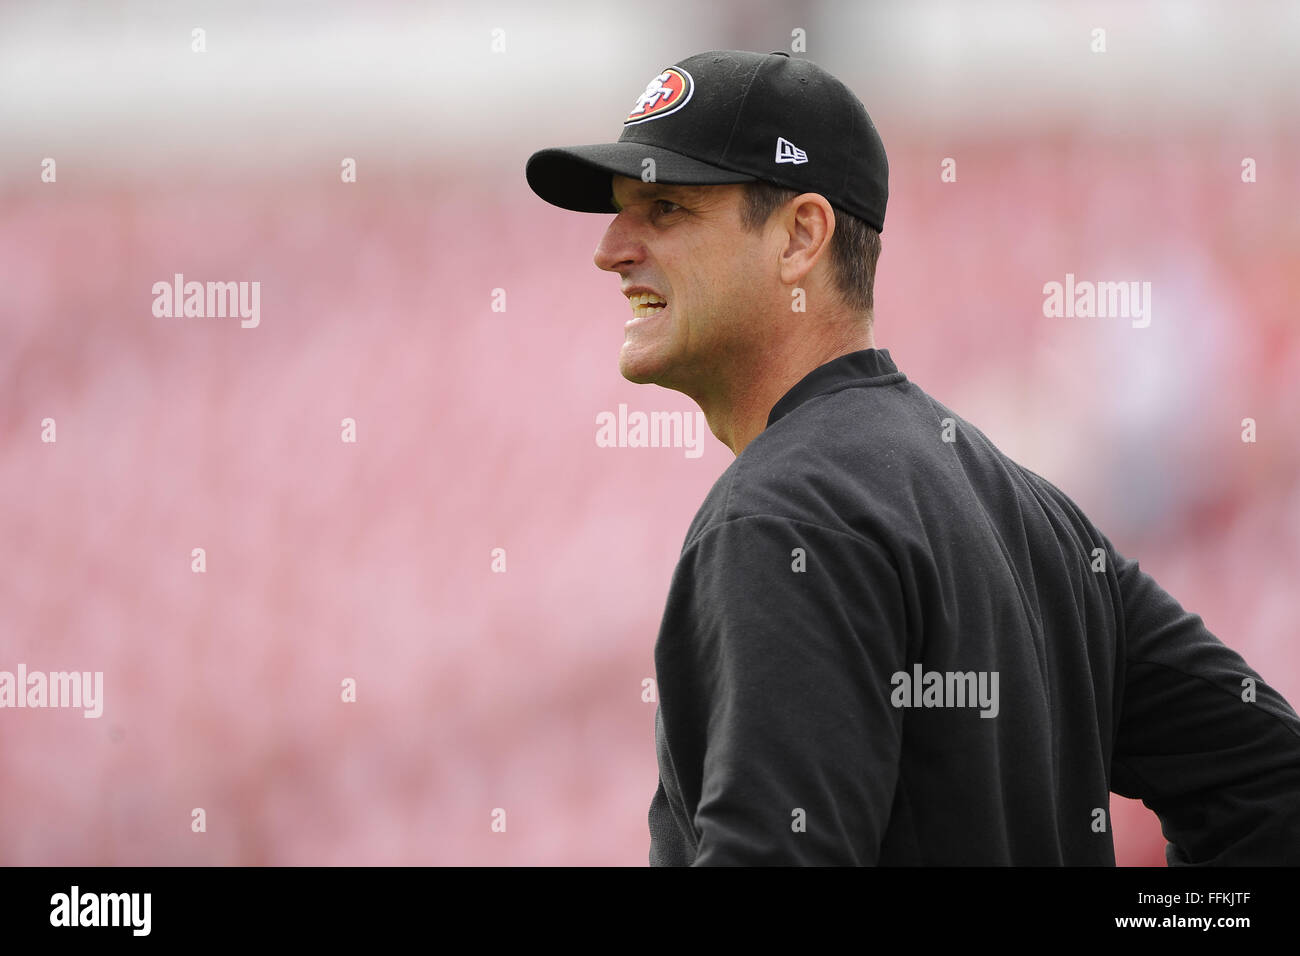 Tampa, FL, USA. 15th Dec, 2013. San Francisco 49ers head coach Jim Harbaugh prior to his team's game against - Stock Image